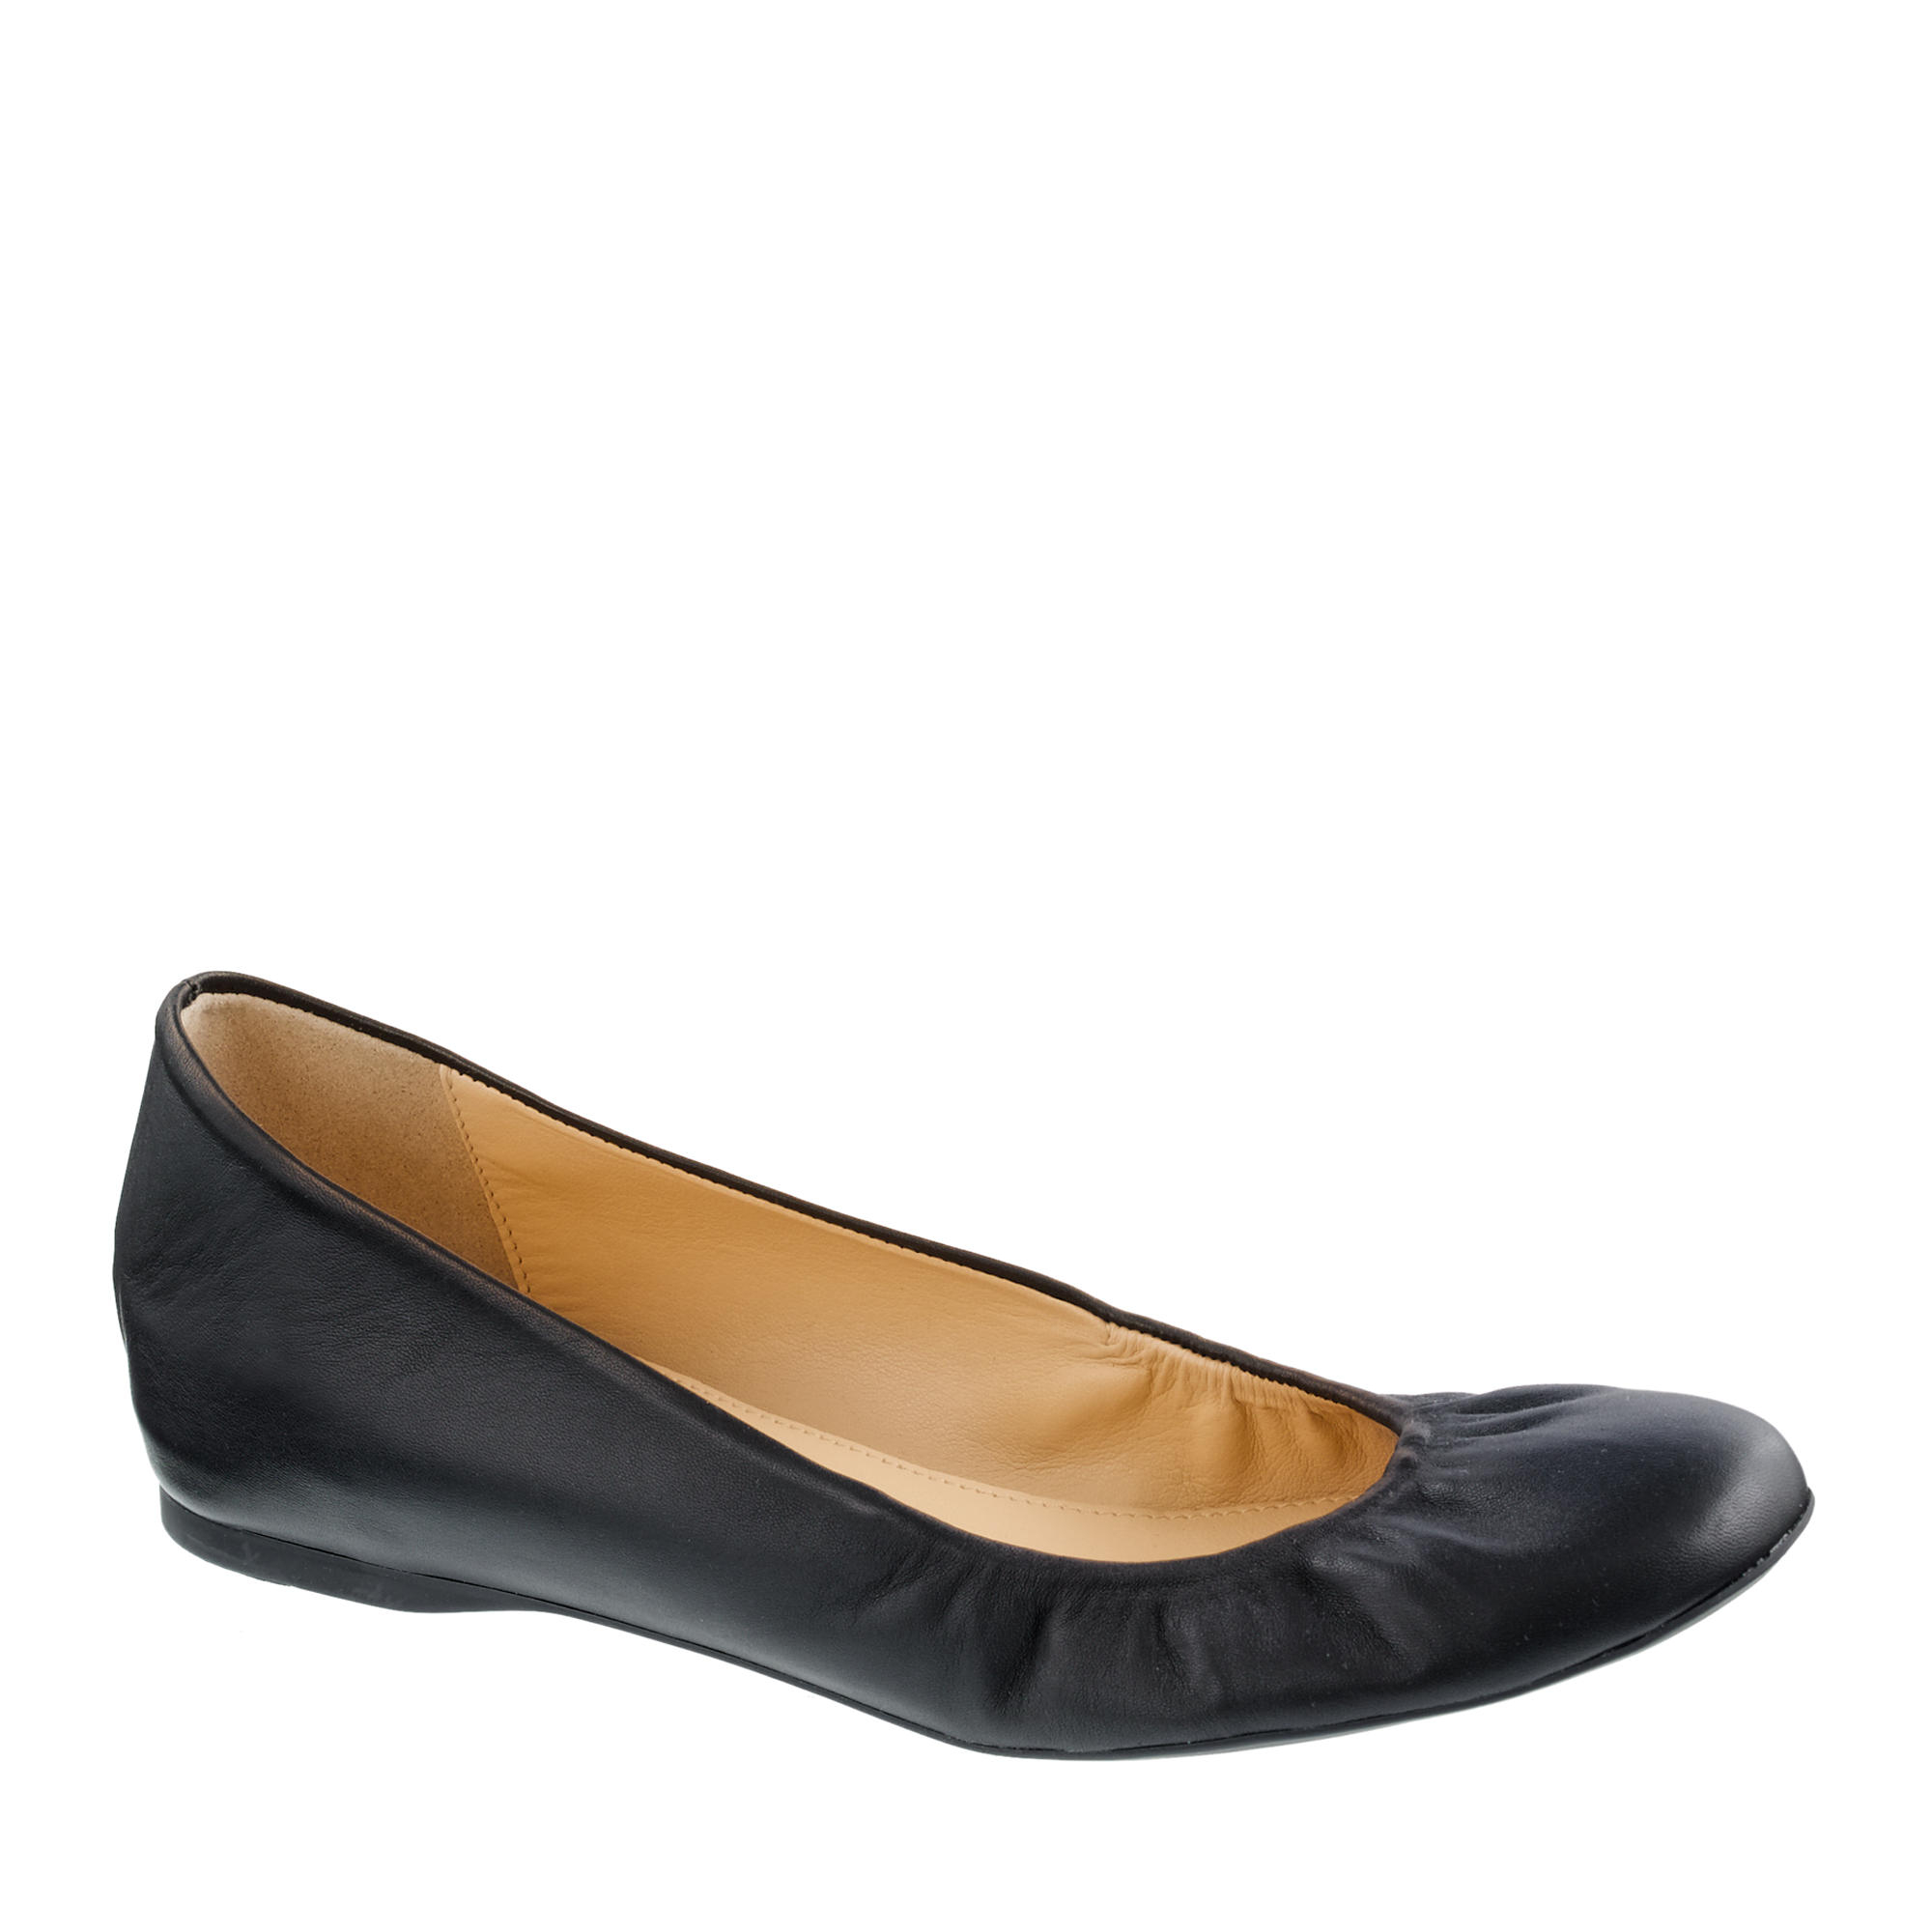 Tory Burch Claire Ballerina Flat ($+): Tory Burch is known for her iconic leather ballet flats. The bright colored leather and shiny gold buckle add just the right amount of color to any outfit. The bright colored leather and shiny gold buckle add just the right amount of color to any outfit.